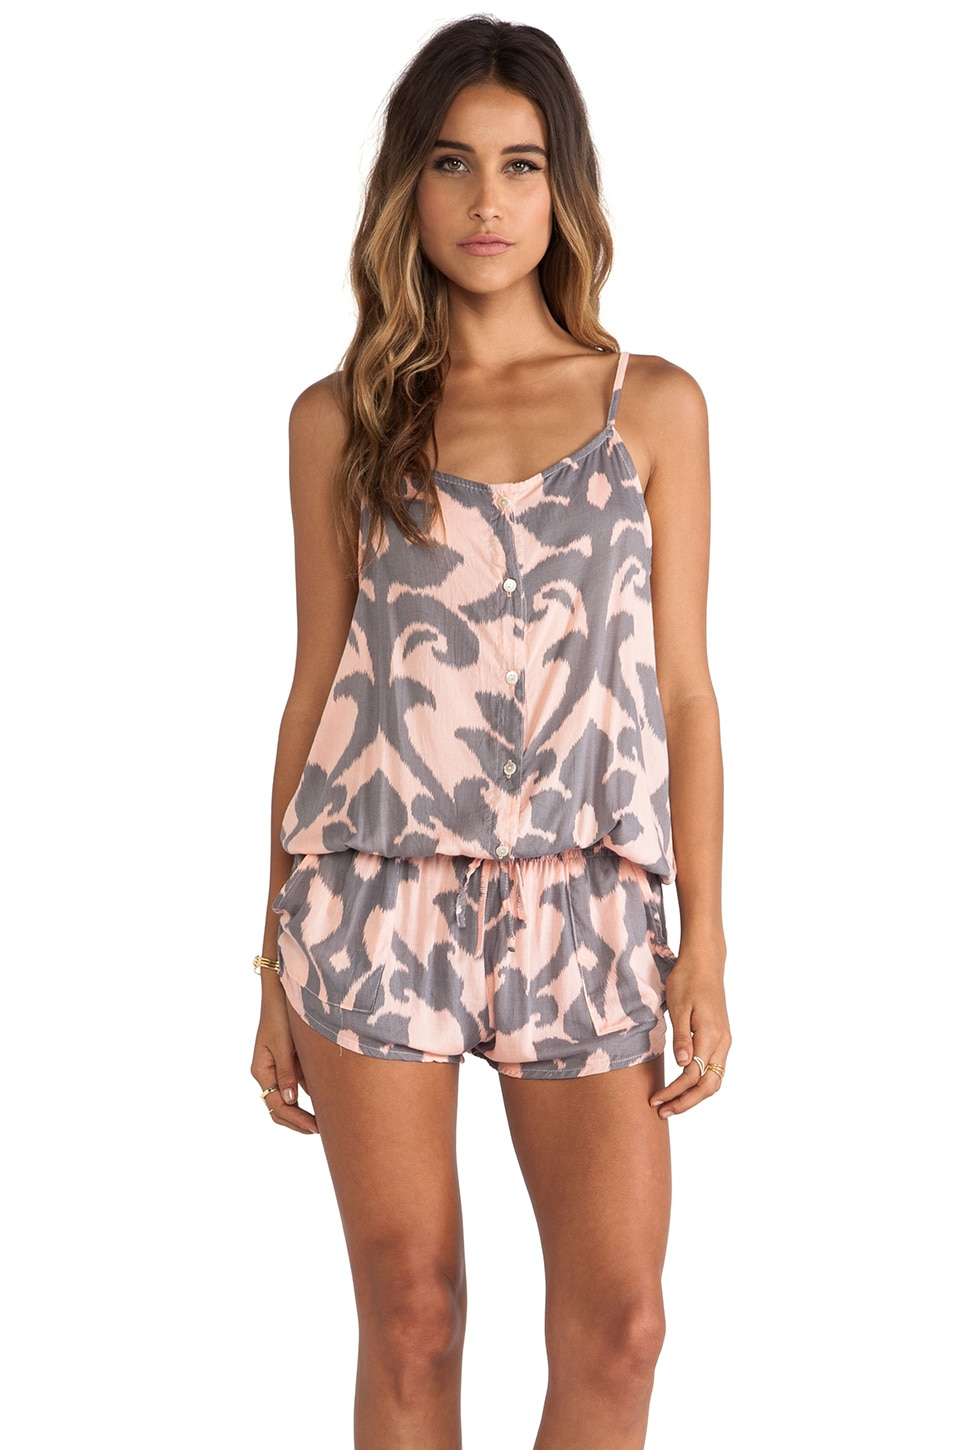 Tiare Hawaii Runaway Romper in Pink Grey Native